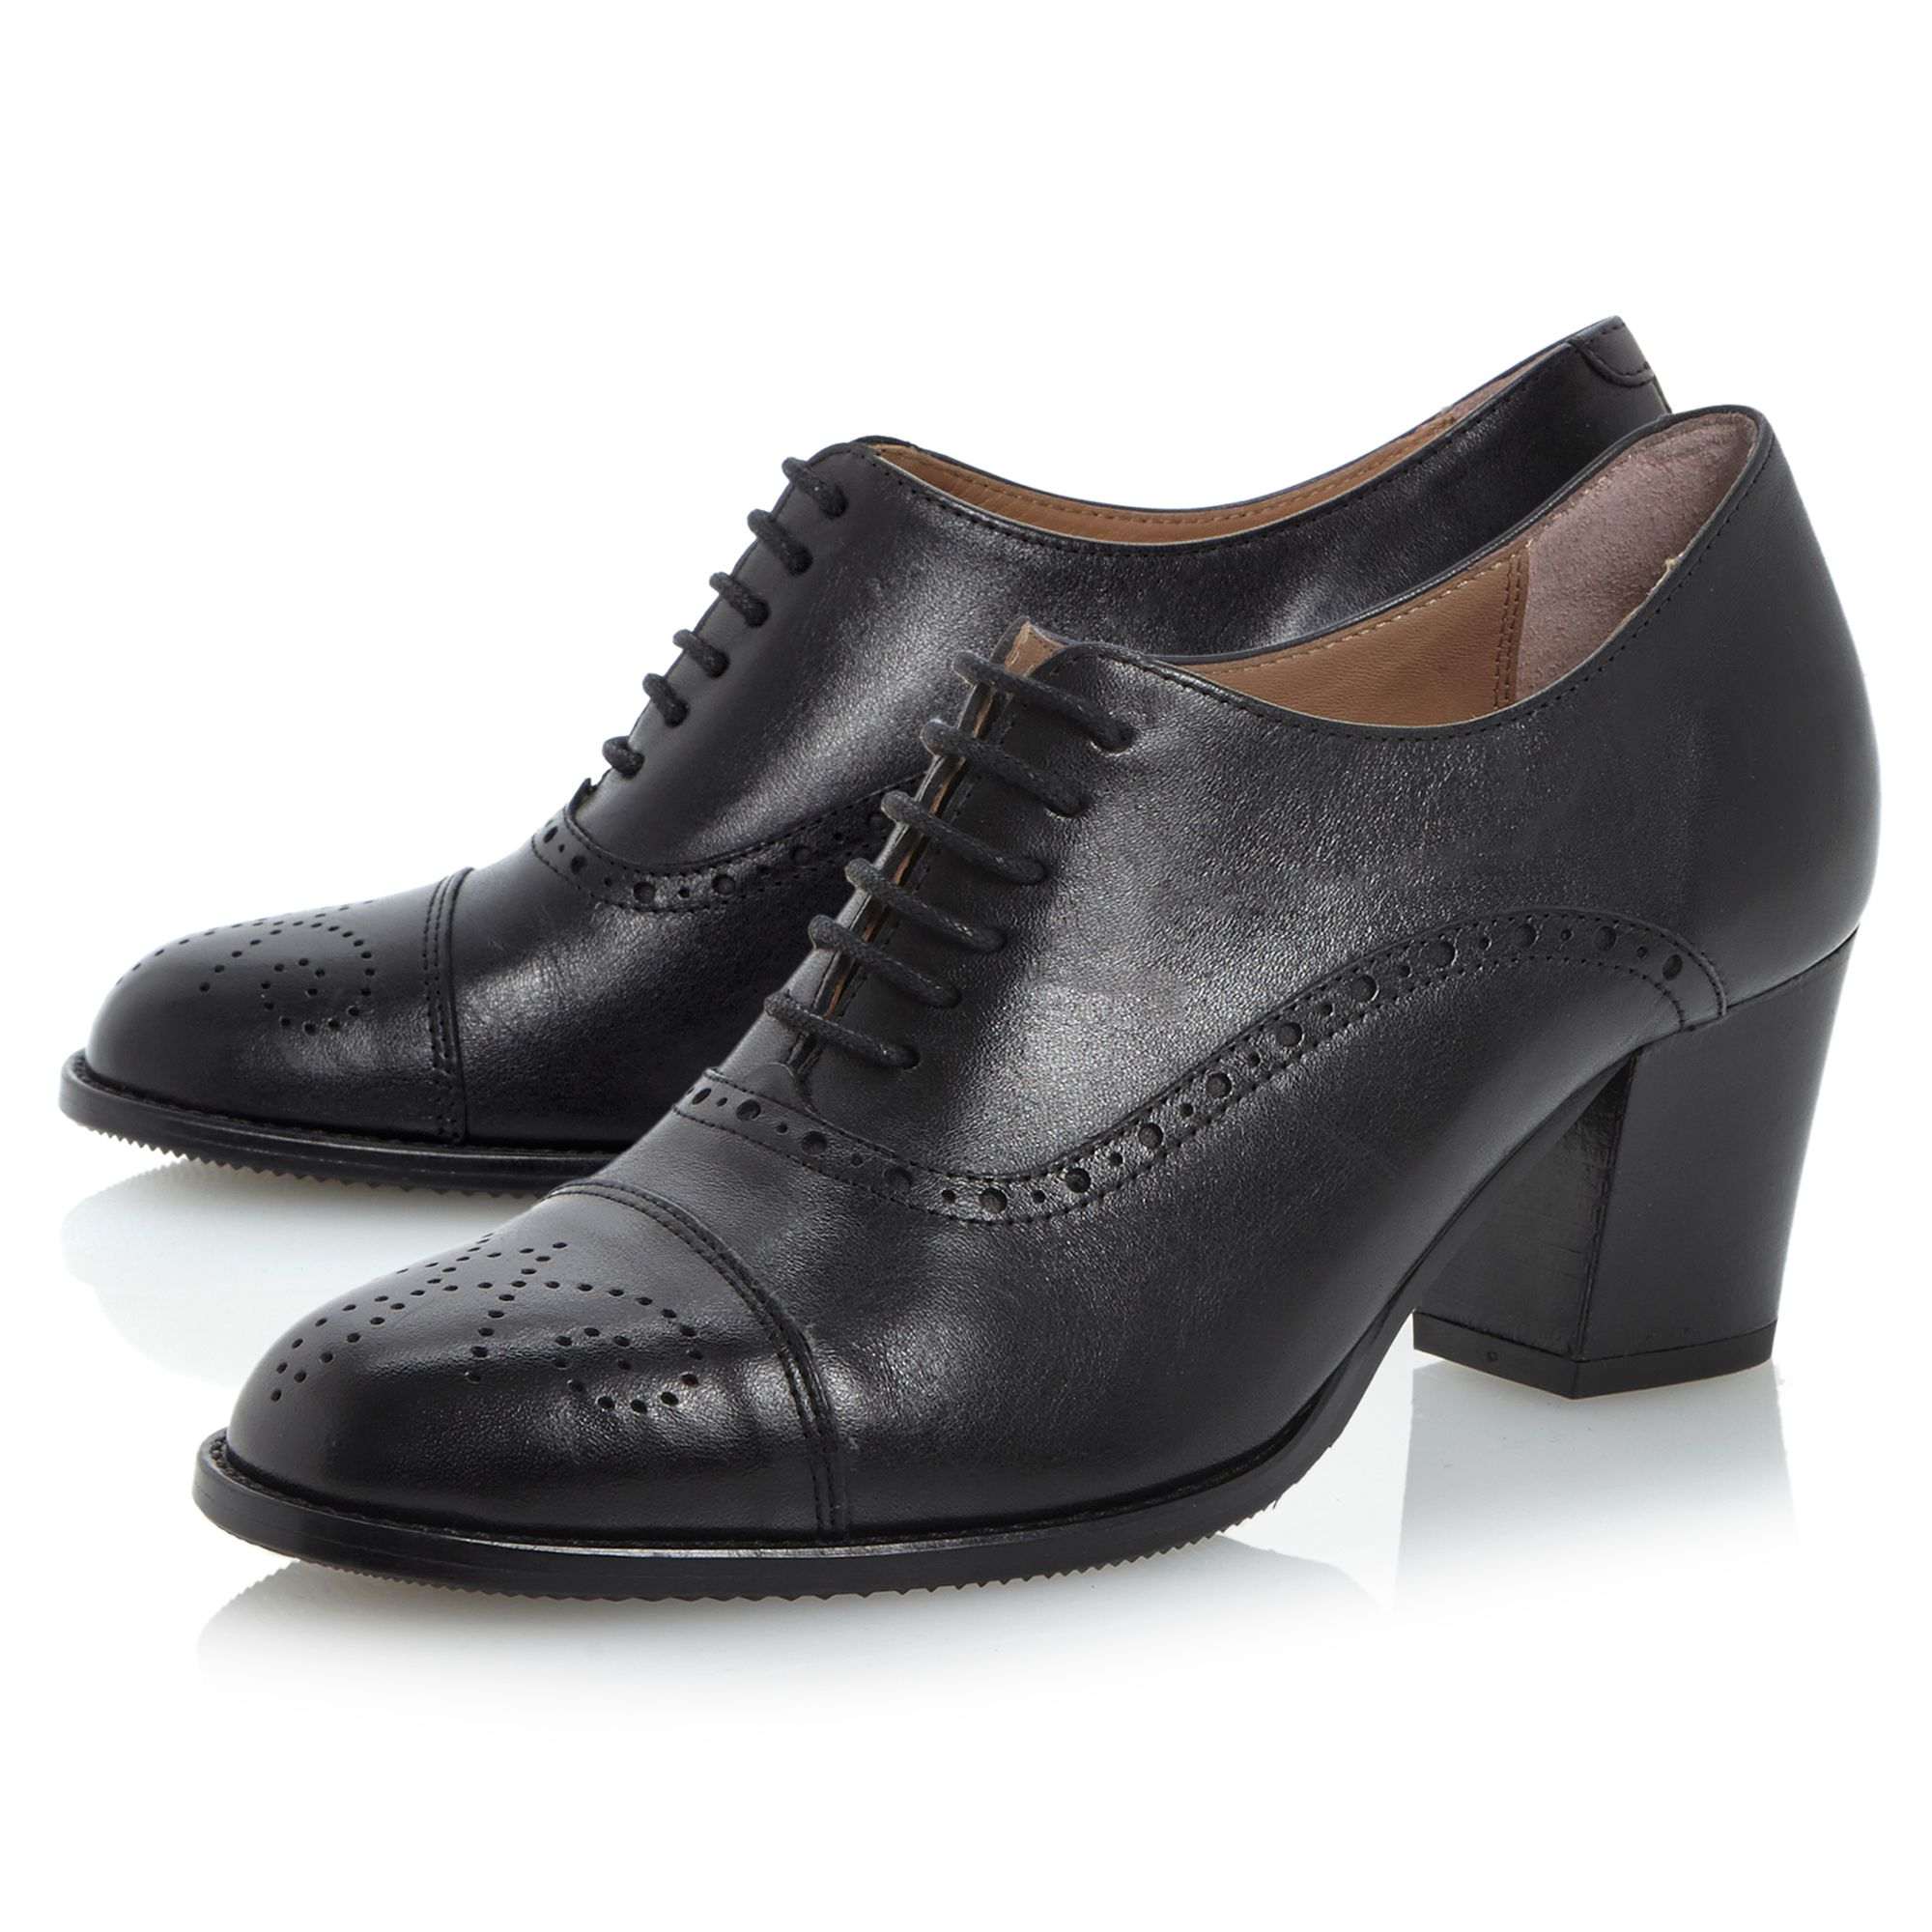 Agarp lace up brogue shoes